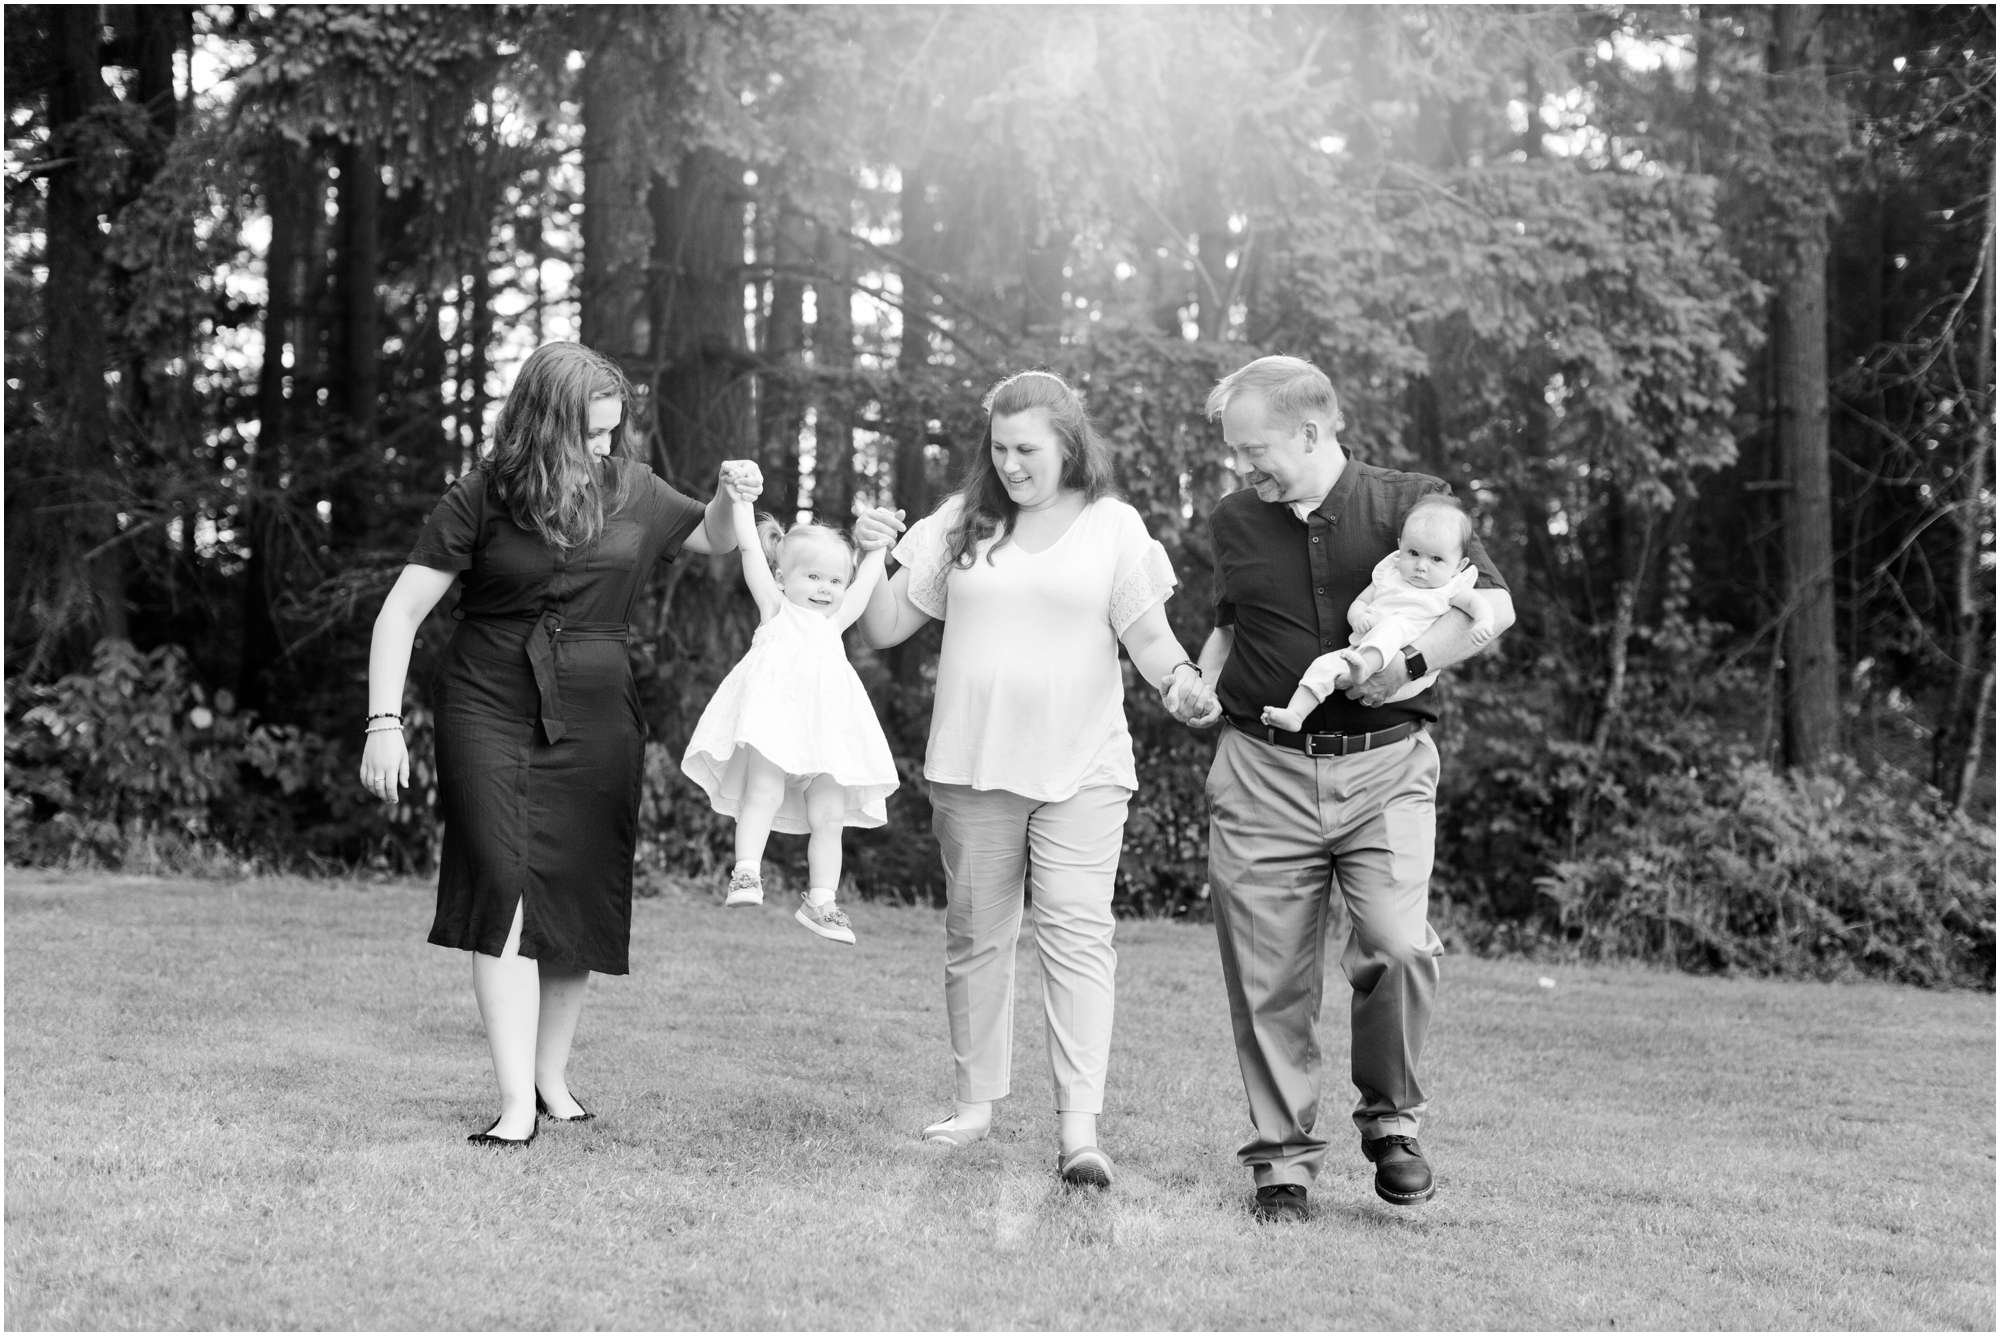 Family portraits at Bradley Lake Park in Puyallup, WA. Photos by Briana Calderon Photography based in the greater Seattle-Tacoma Area._1375.jpg